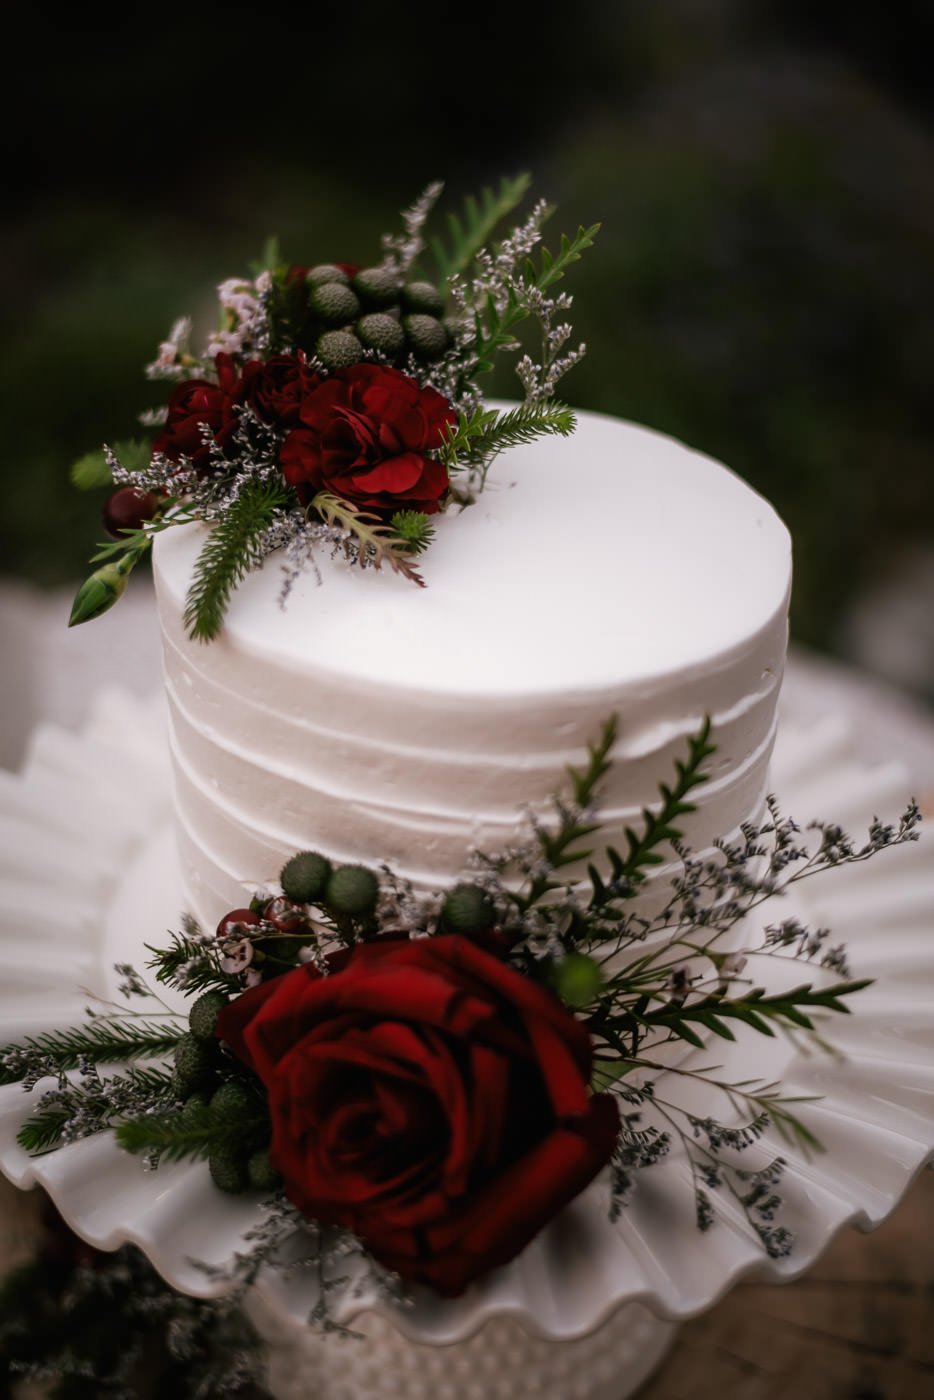 Simple white wedding cake with red rose details and other splendid greenery.